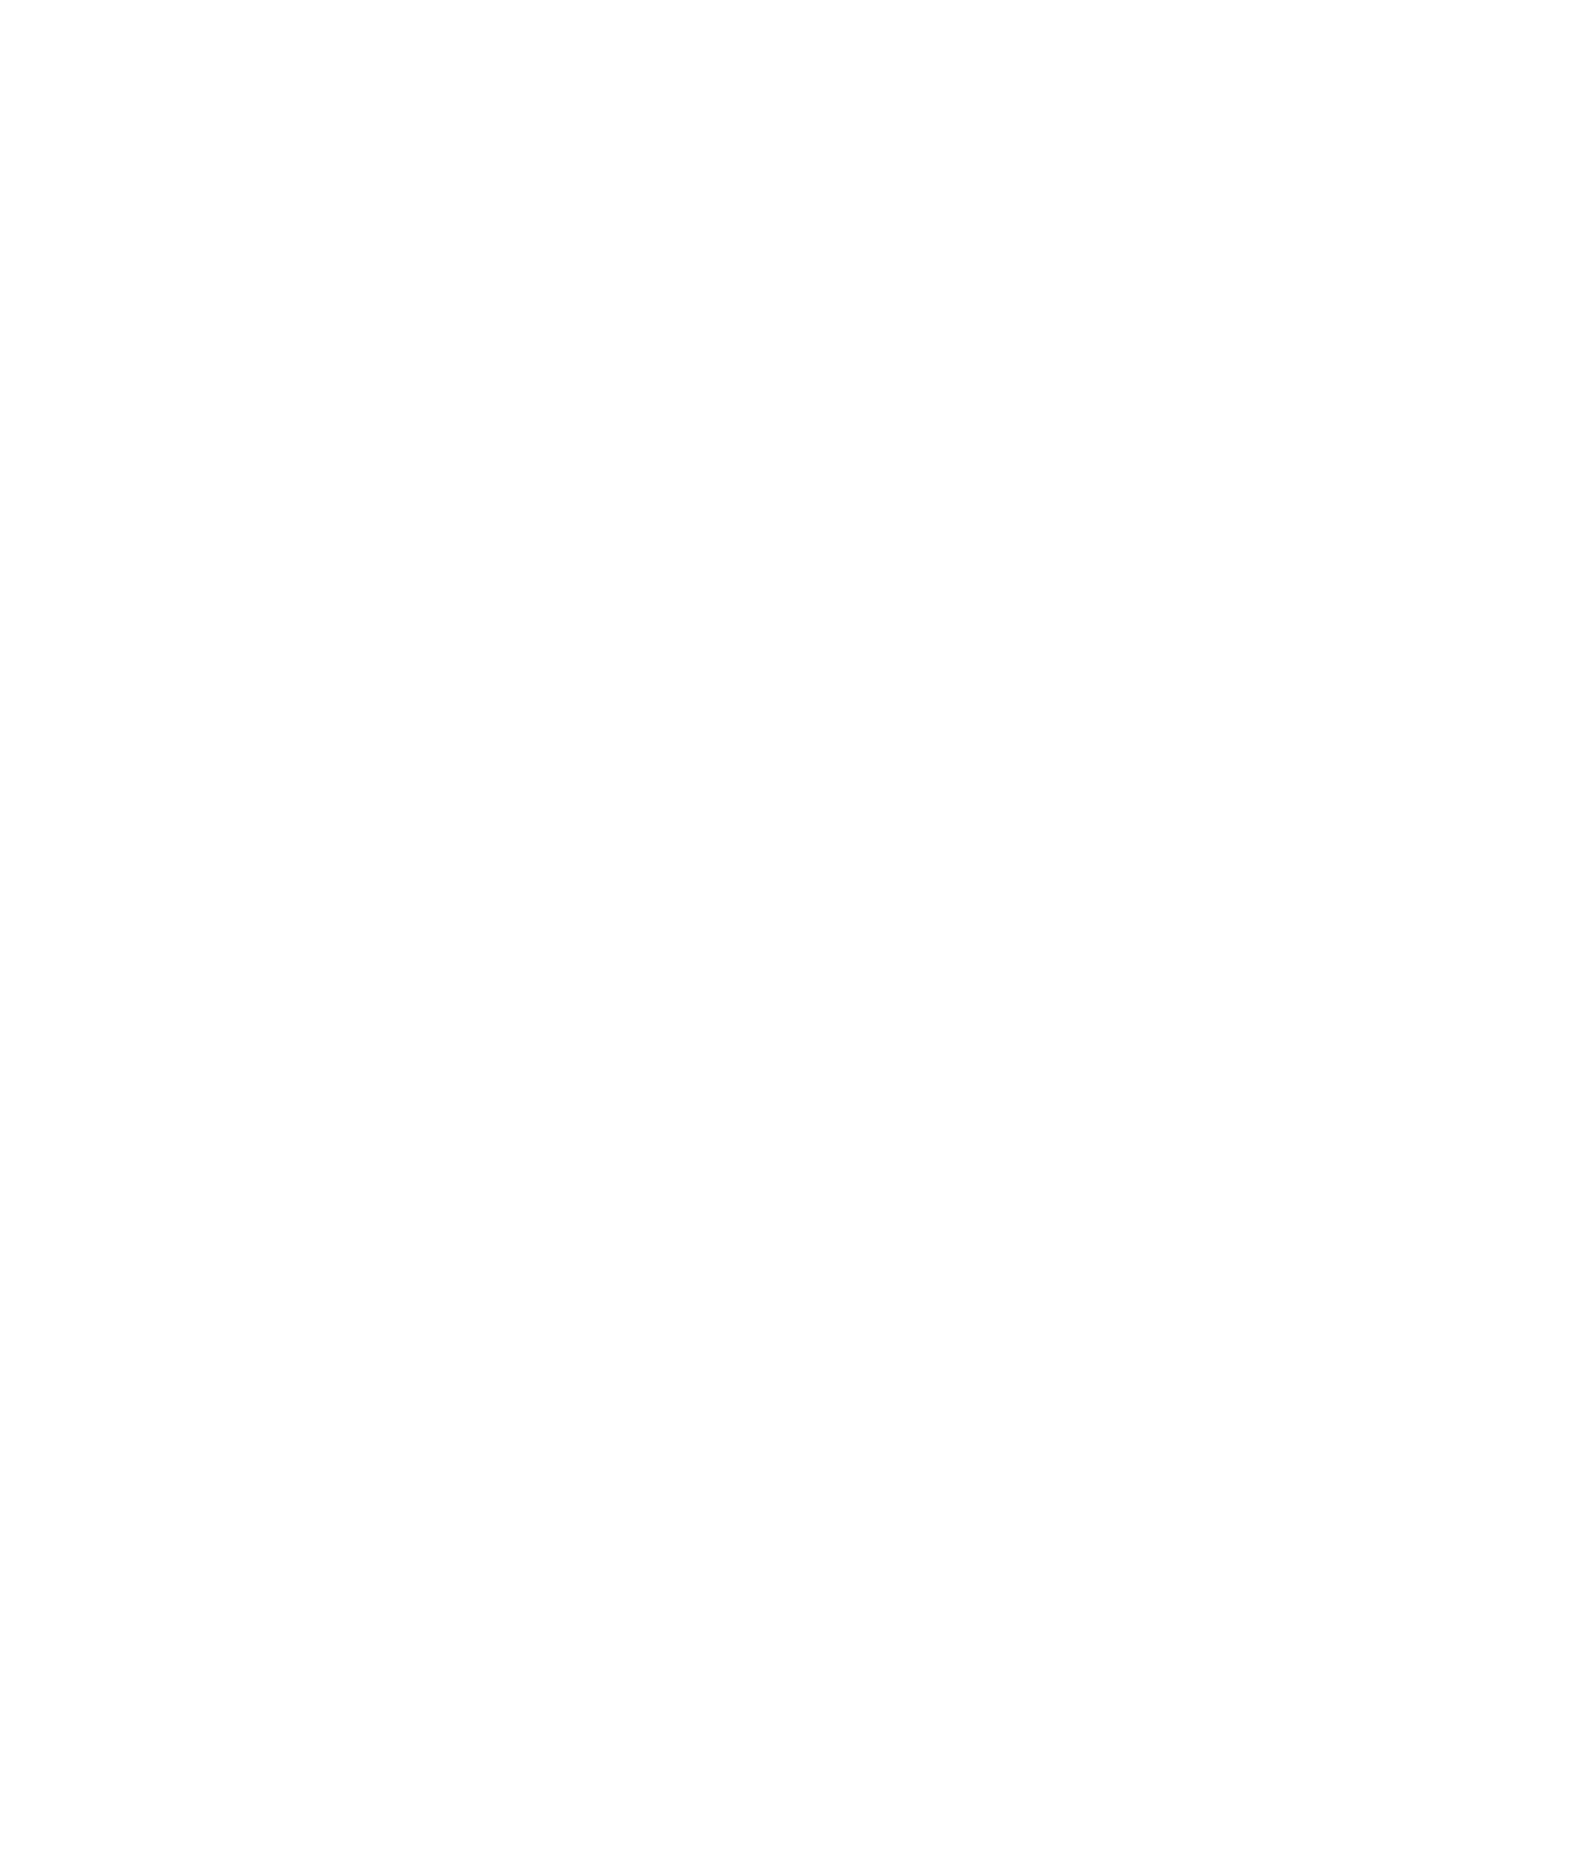 Logo T3 in balance - Tree with T and 3 in white